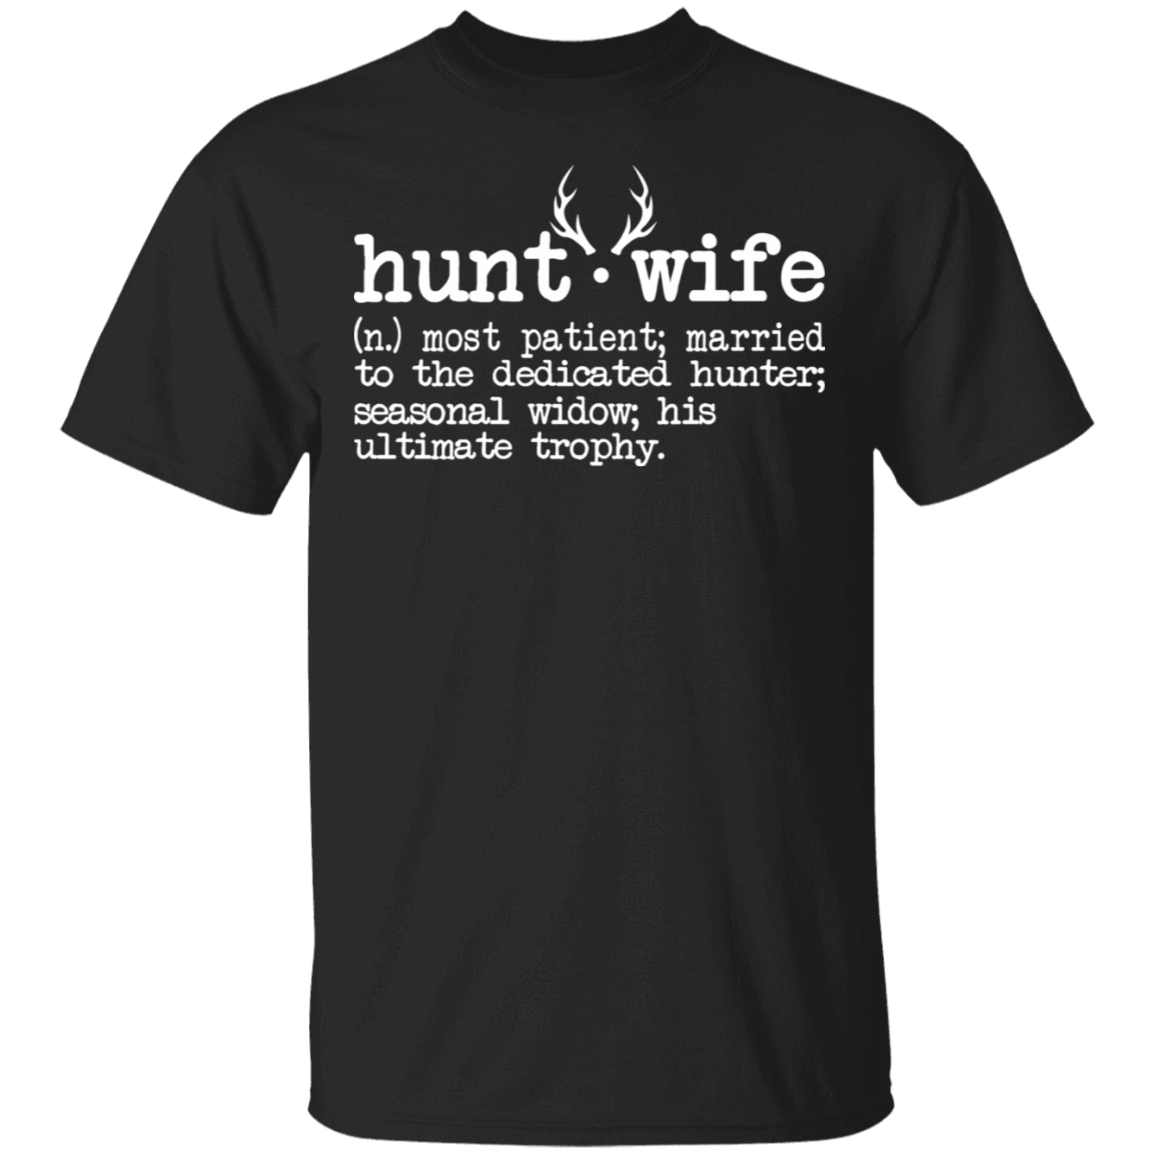 Hunt Wife Definition Shirt Married To The Dedicated Hunter T-Shirts, Hoodies, Tank 22-113-79535896-252 - Tee Ript